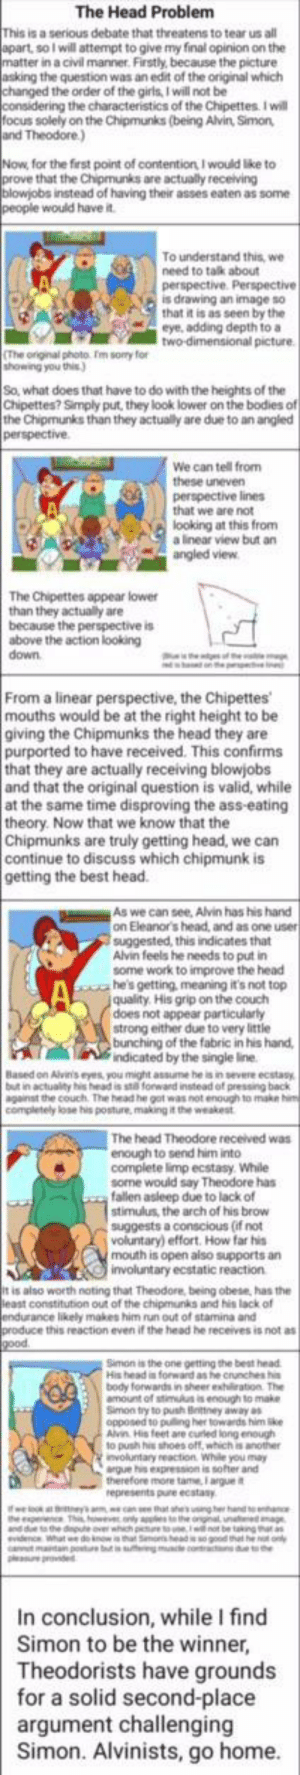 Lets settle it ritards: The Head Problem  This is a serious debate that threatens to tear us all  apart, so I will attempt to give my final opinion on the  matter in a civil manner. Firstly, because the picture  asking the question was an edit of the original which  changed the order of the girls, I will not be  considering the characteristics of the Chipettes. I will  focus solely on the Chipmunks (being Alvin, Simon,  and Theodore.)  Now, for the first point of contention I would like to  prove that the Chipmunks are actually receiving  blowjobs instead of having their asses eaten as some  people would have it.  To understand this, we  need to talk about  perspective. Perspective  is drawing an image so  that it is as seen by the  eye, adding depth to a  two-dimensional picture.  (The original photo fm somy for  showing you this)  So, what does that have to do with the heights of the  Chipettes? Simply put, they look lower on the bodies of  the Chipmunks than they actually are due to an angled  perspective  We can tell from  these uneven  perspective lines  that we are not  looking at this from  a linear view but an  angled view  The Chipettes appear lower  than they actually are  because the perspective is  above the action looking  down  on p  s  From a linear perspective, the Chipettes  mouths would be at the right height to be  giving the Chipmunks the head they are  purported to have received. This confirms  that they are actually receiving blowjobs  and that the original question is valid, while  at the same time disproving the ass-eating  theory. Now that we know that the  Chipmunks are truly getting head, we can  continue to discuss which chipmunk is  getting the best head.  As we can see, Alvin has his hand  on Eleanor's head, and as one user  suggested, this indicates that  Alvin feels he needs to put in  some work to improve the head  he's getting, meaning it's not top  quality. His grip on the couch  does not appear particularly  strong either due to v